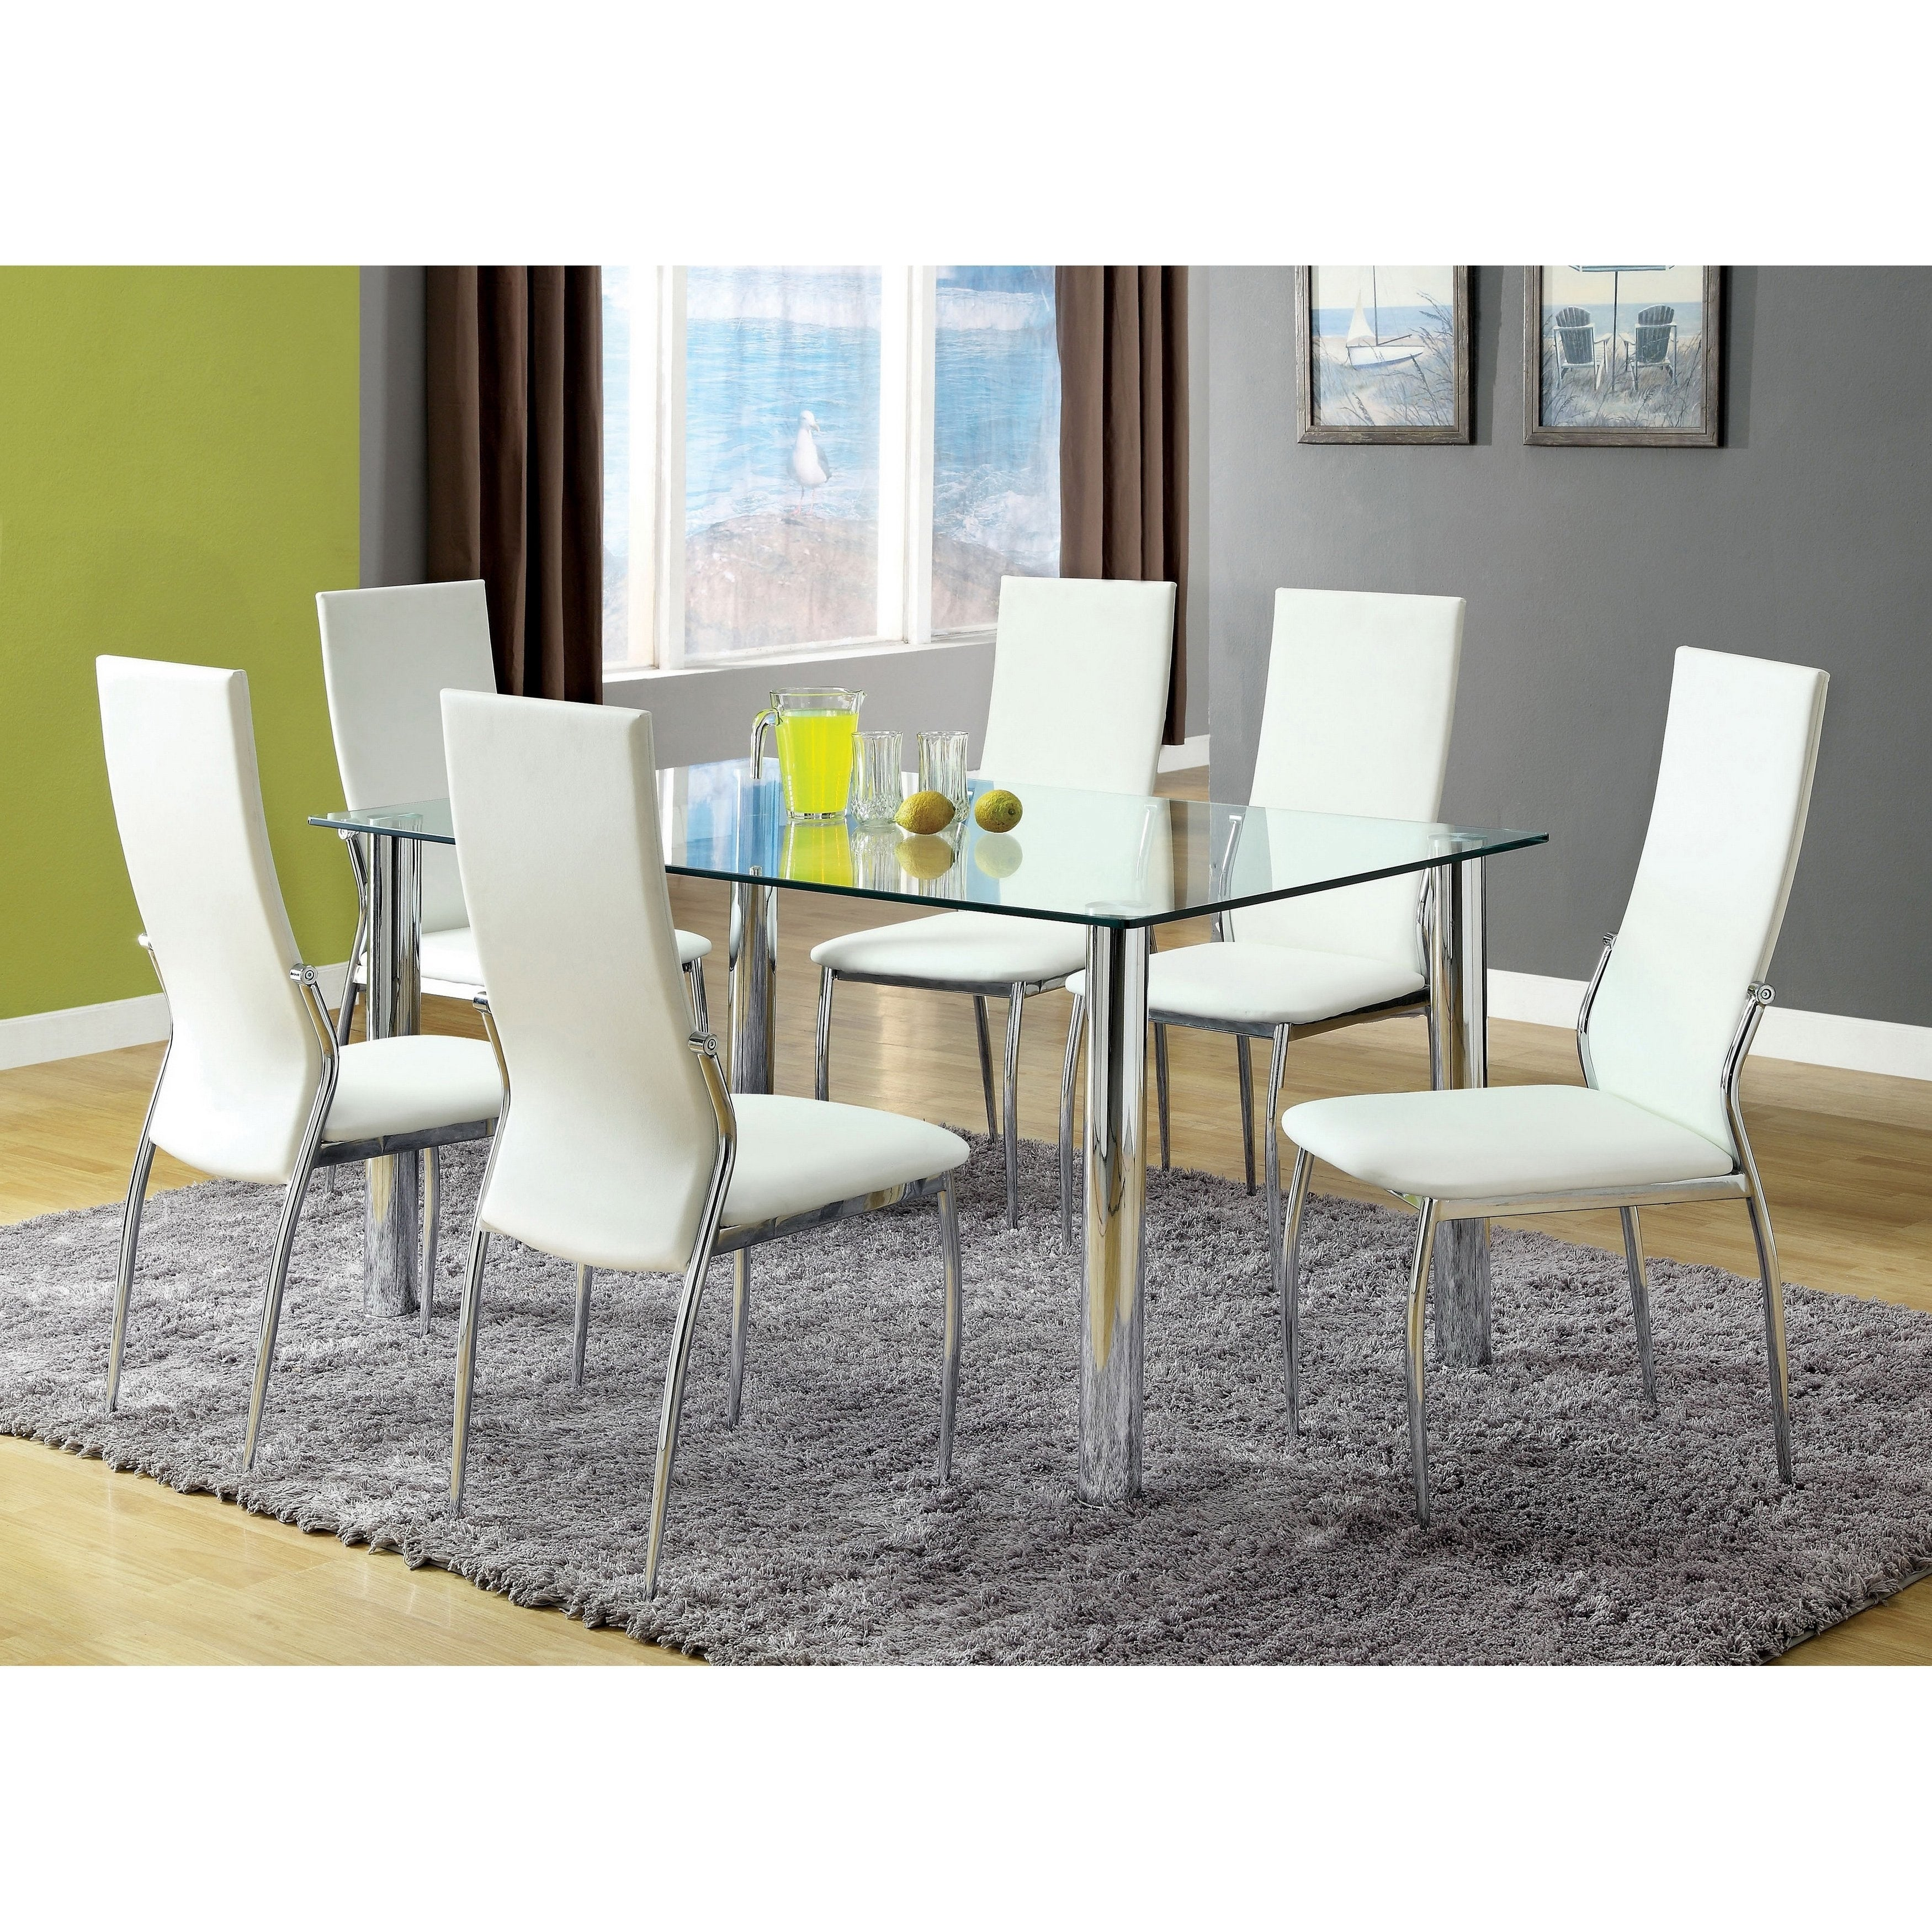 Furniture Of America Bona Modern White Faux Leather 7 Piece Dining Set Overstock 6521228